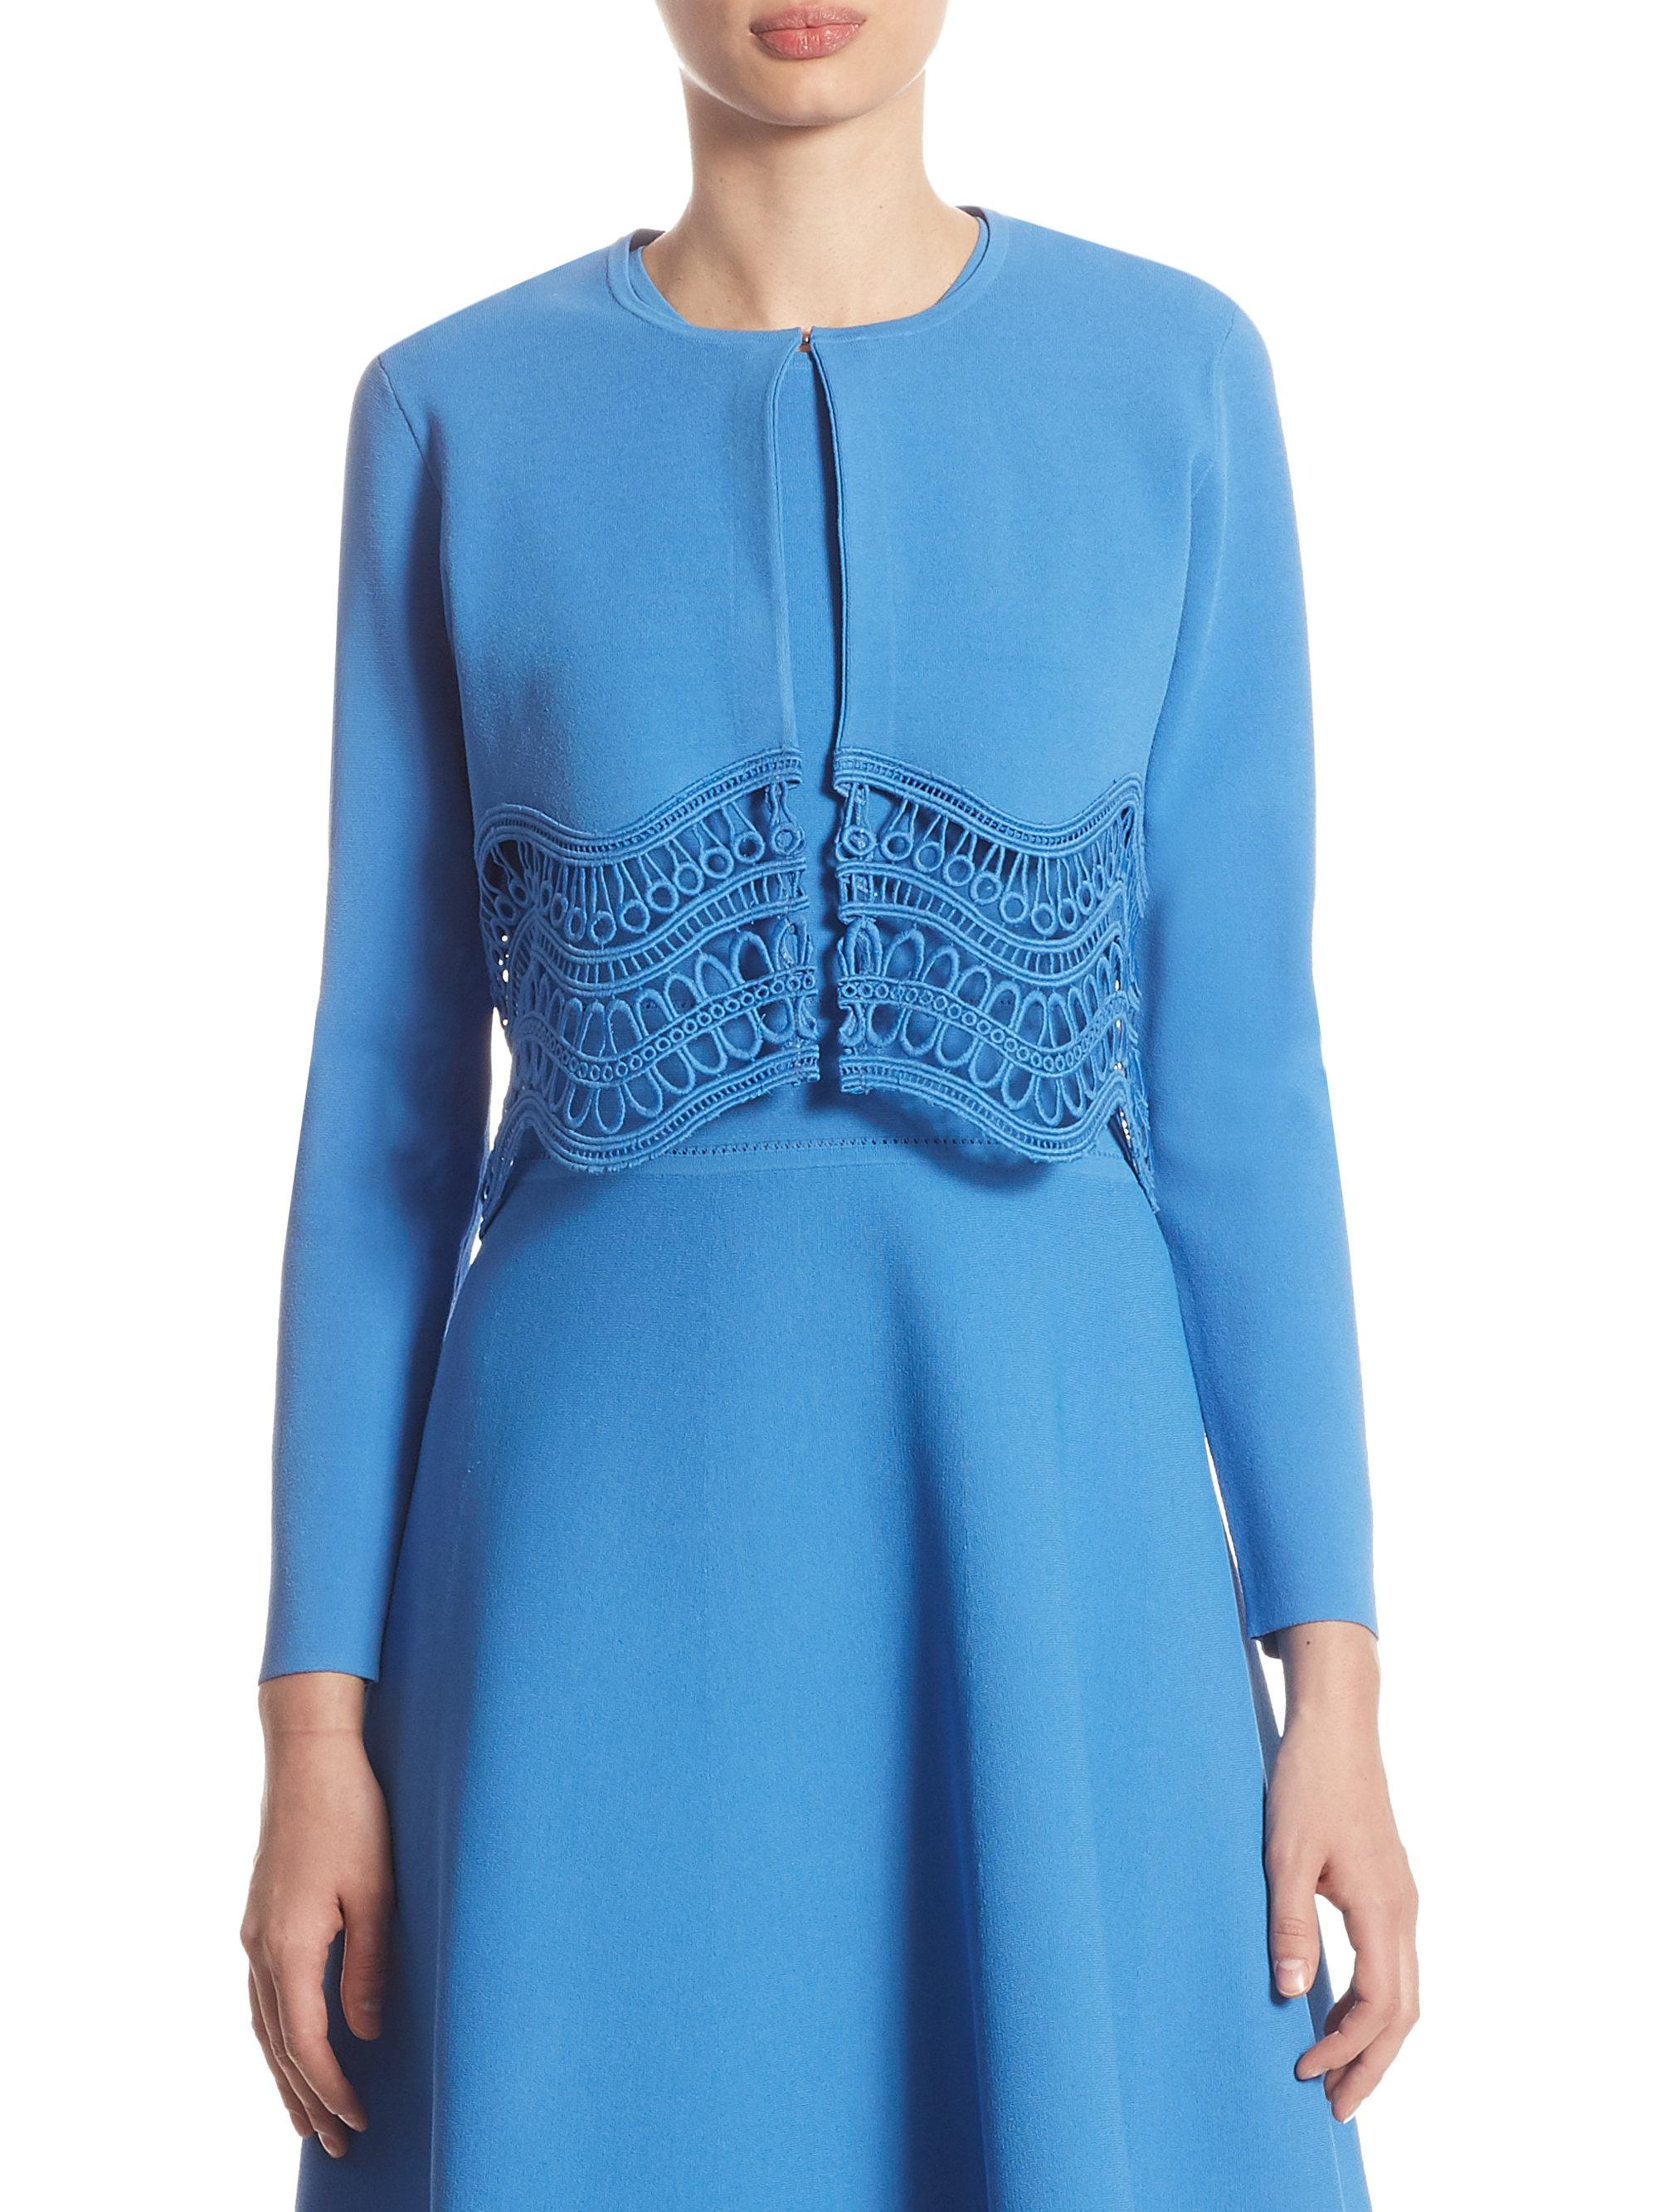 Lela Rose Woman Off-the-shoulder Guipure Lace Top Cobalt Blue Size 10 Lela Rose Free Shipping Shop Clearance The Cheapest Clearance Best Place Order Cheap Price VEvZx